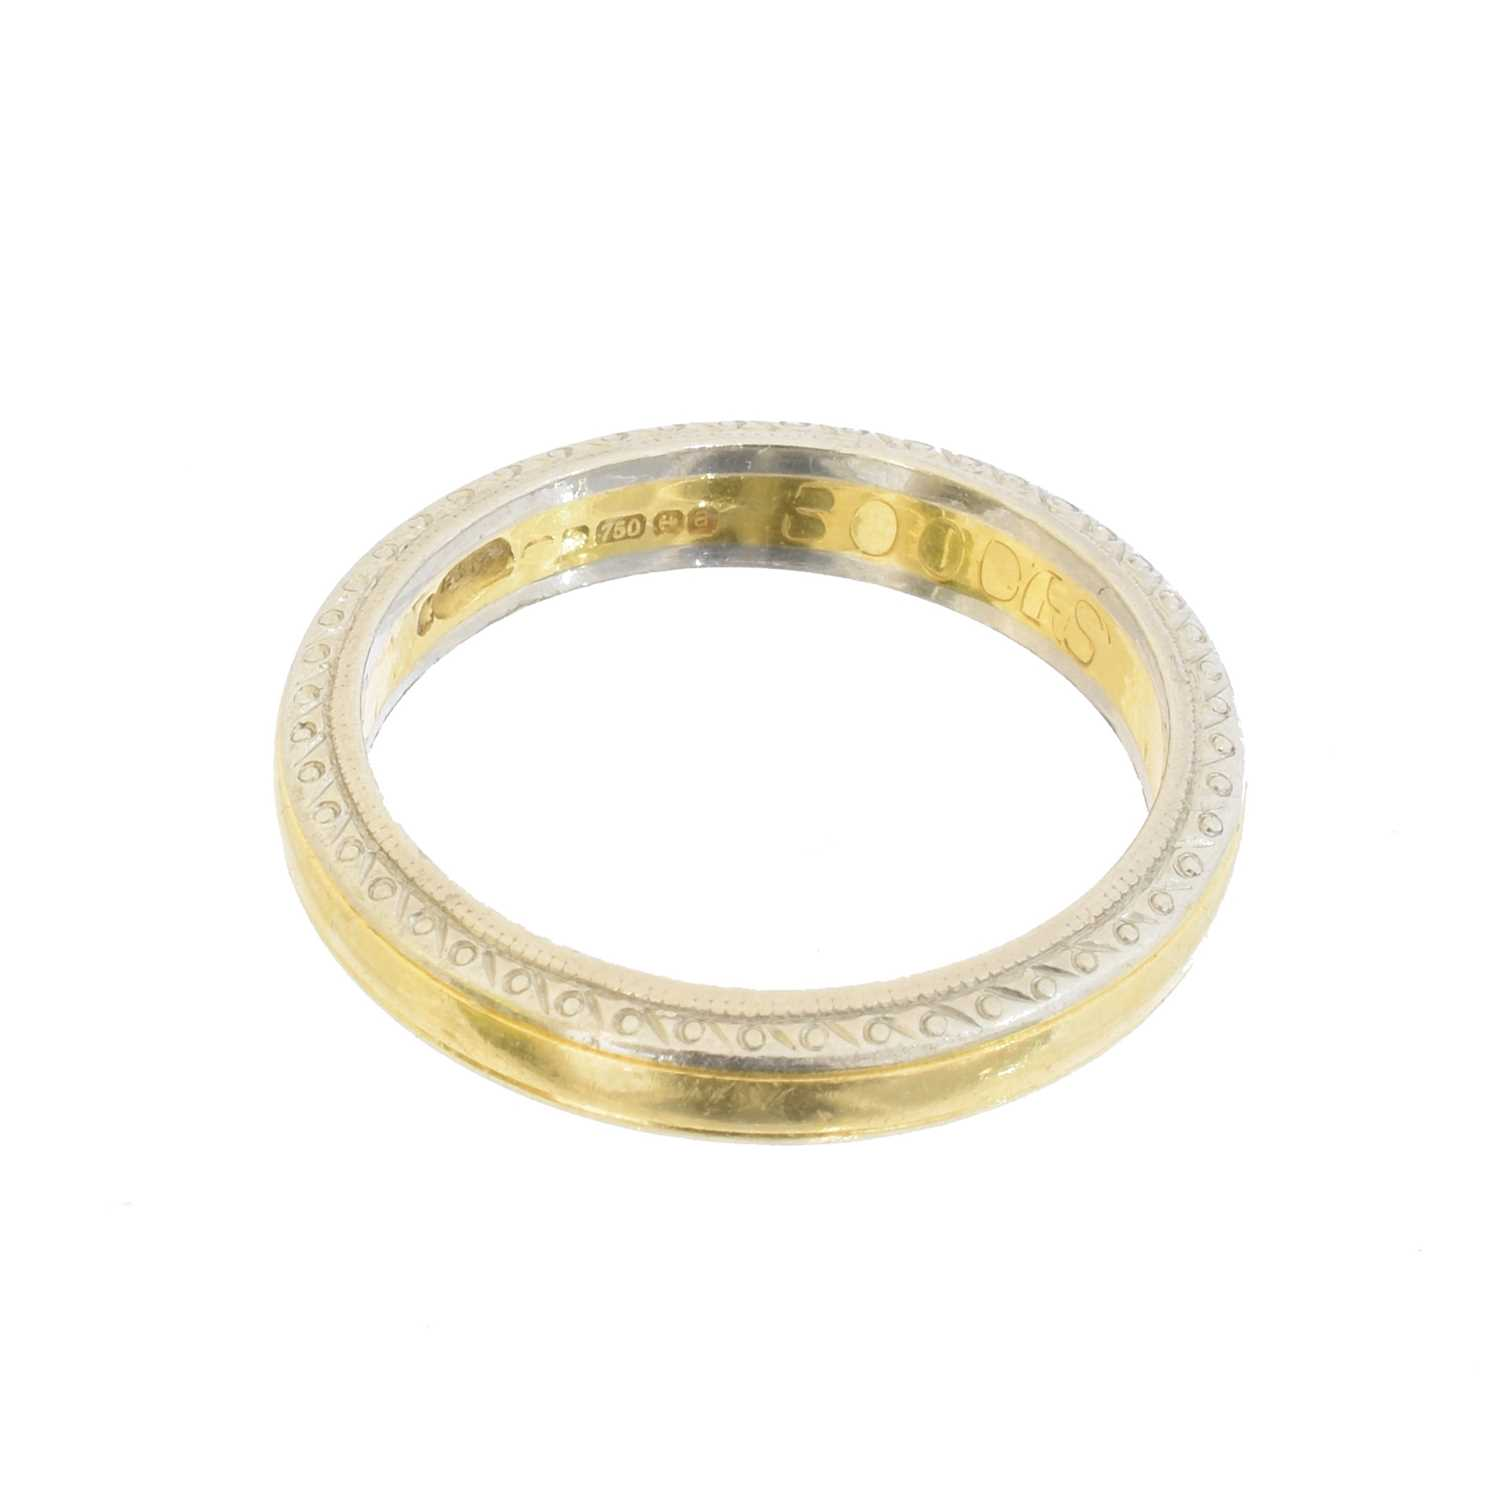 An 18ct gold band ring by Boodles, - Image 2 of 2